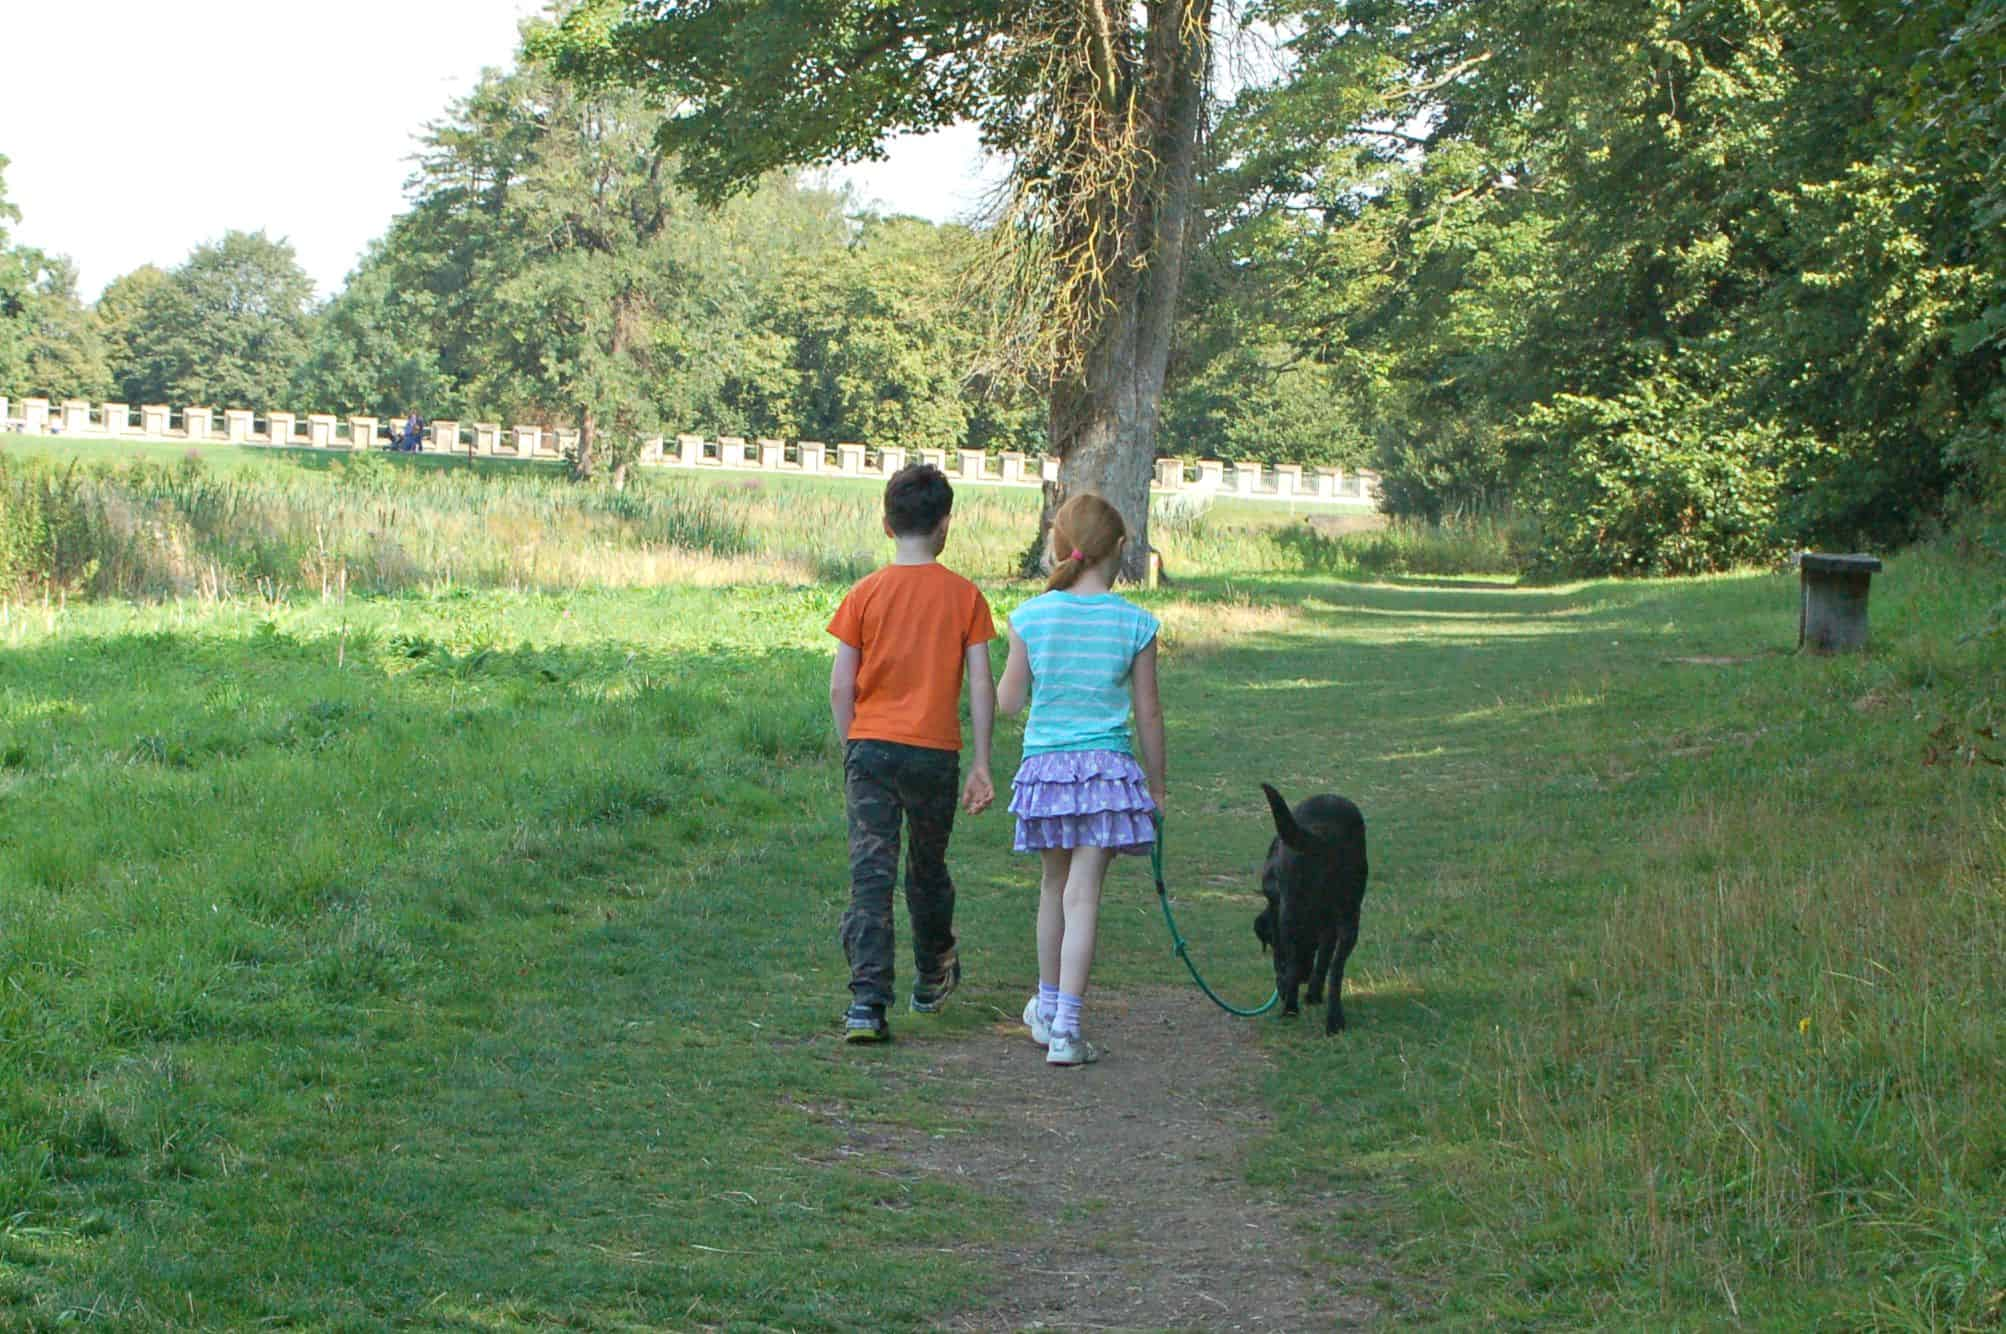 Lydiard Park in Swindon, Wiltshire is very popular with local families, and a really lovely place to spend time. It is the perfect environment for kids to play in and explore; the site is beautifully maintained, and, as the seasons change, there's always something different to see, however many times you have visited before.